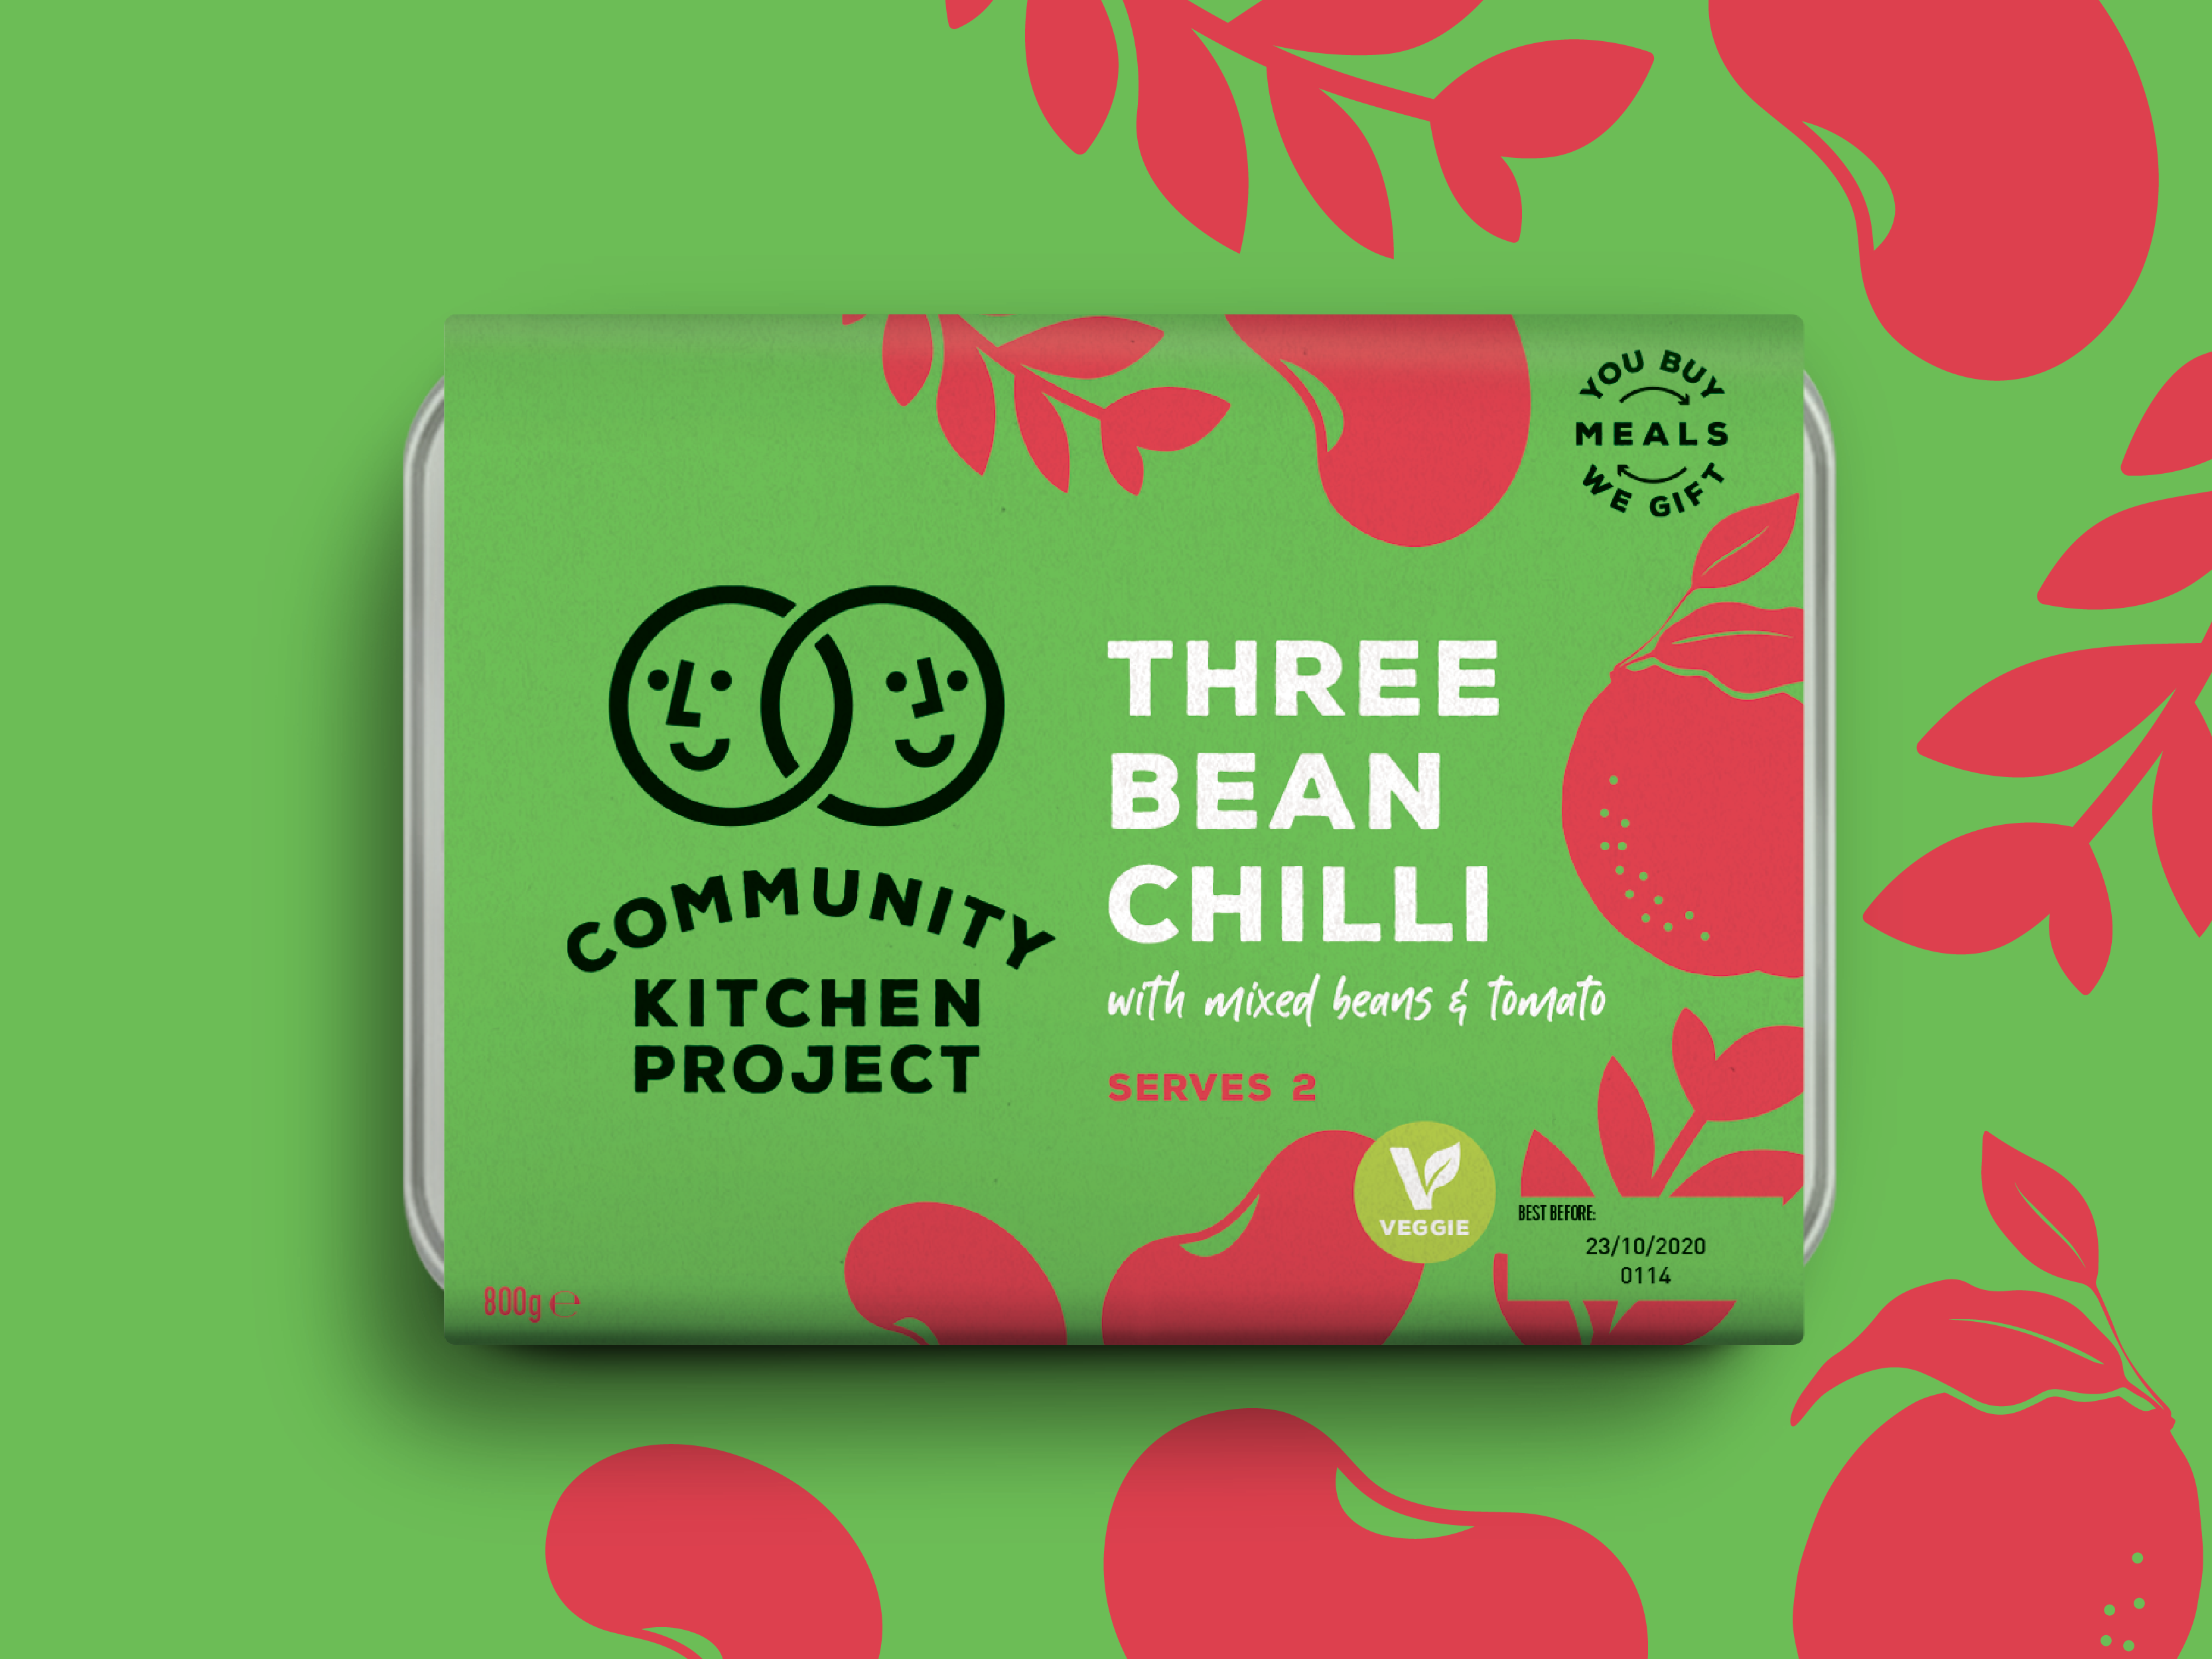 Family (and friends) Create Identity for Community Kitchen Project